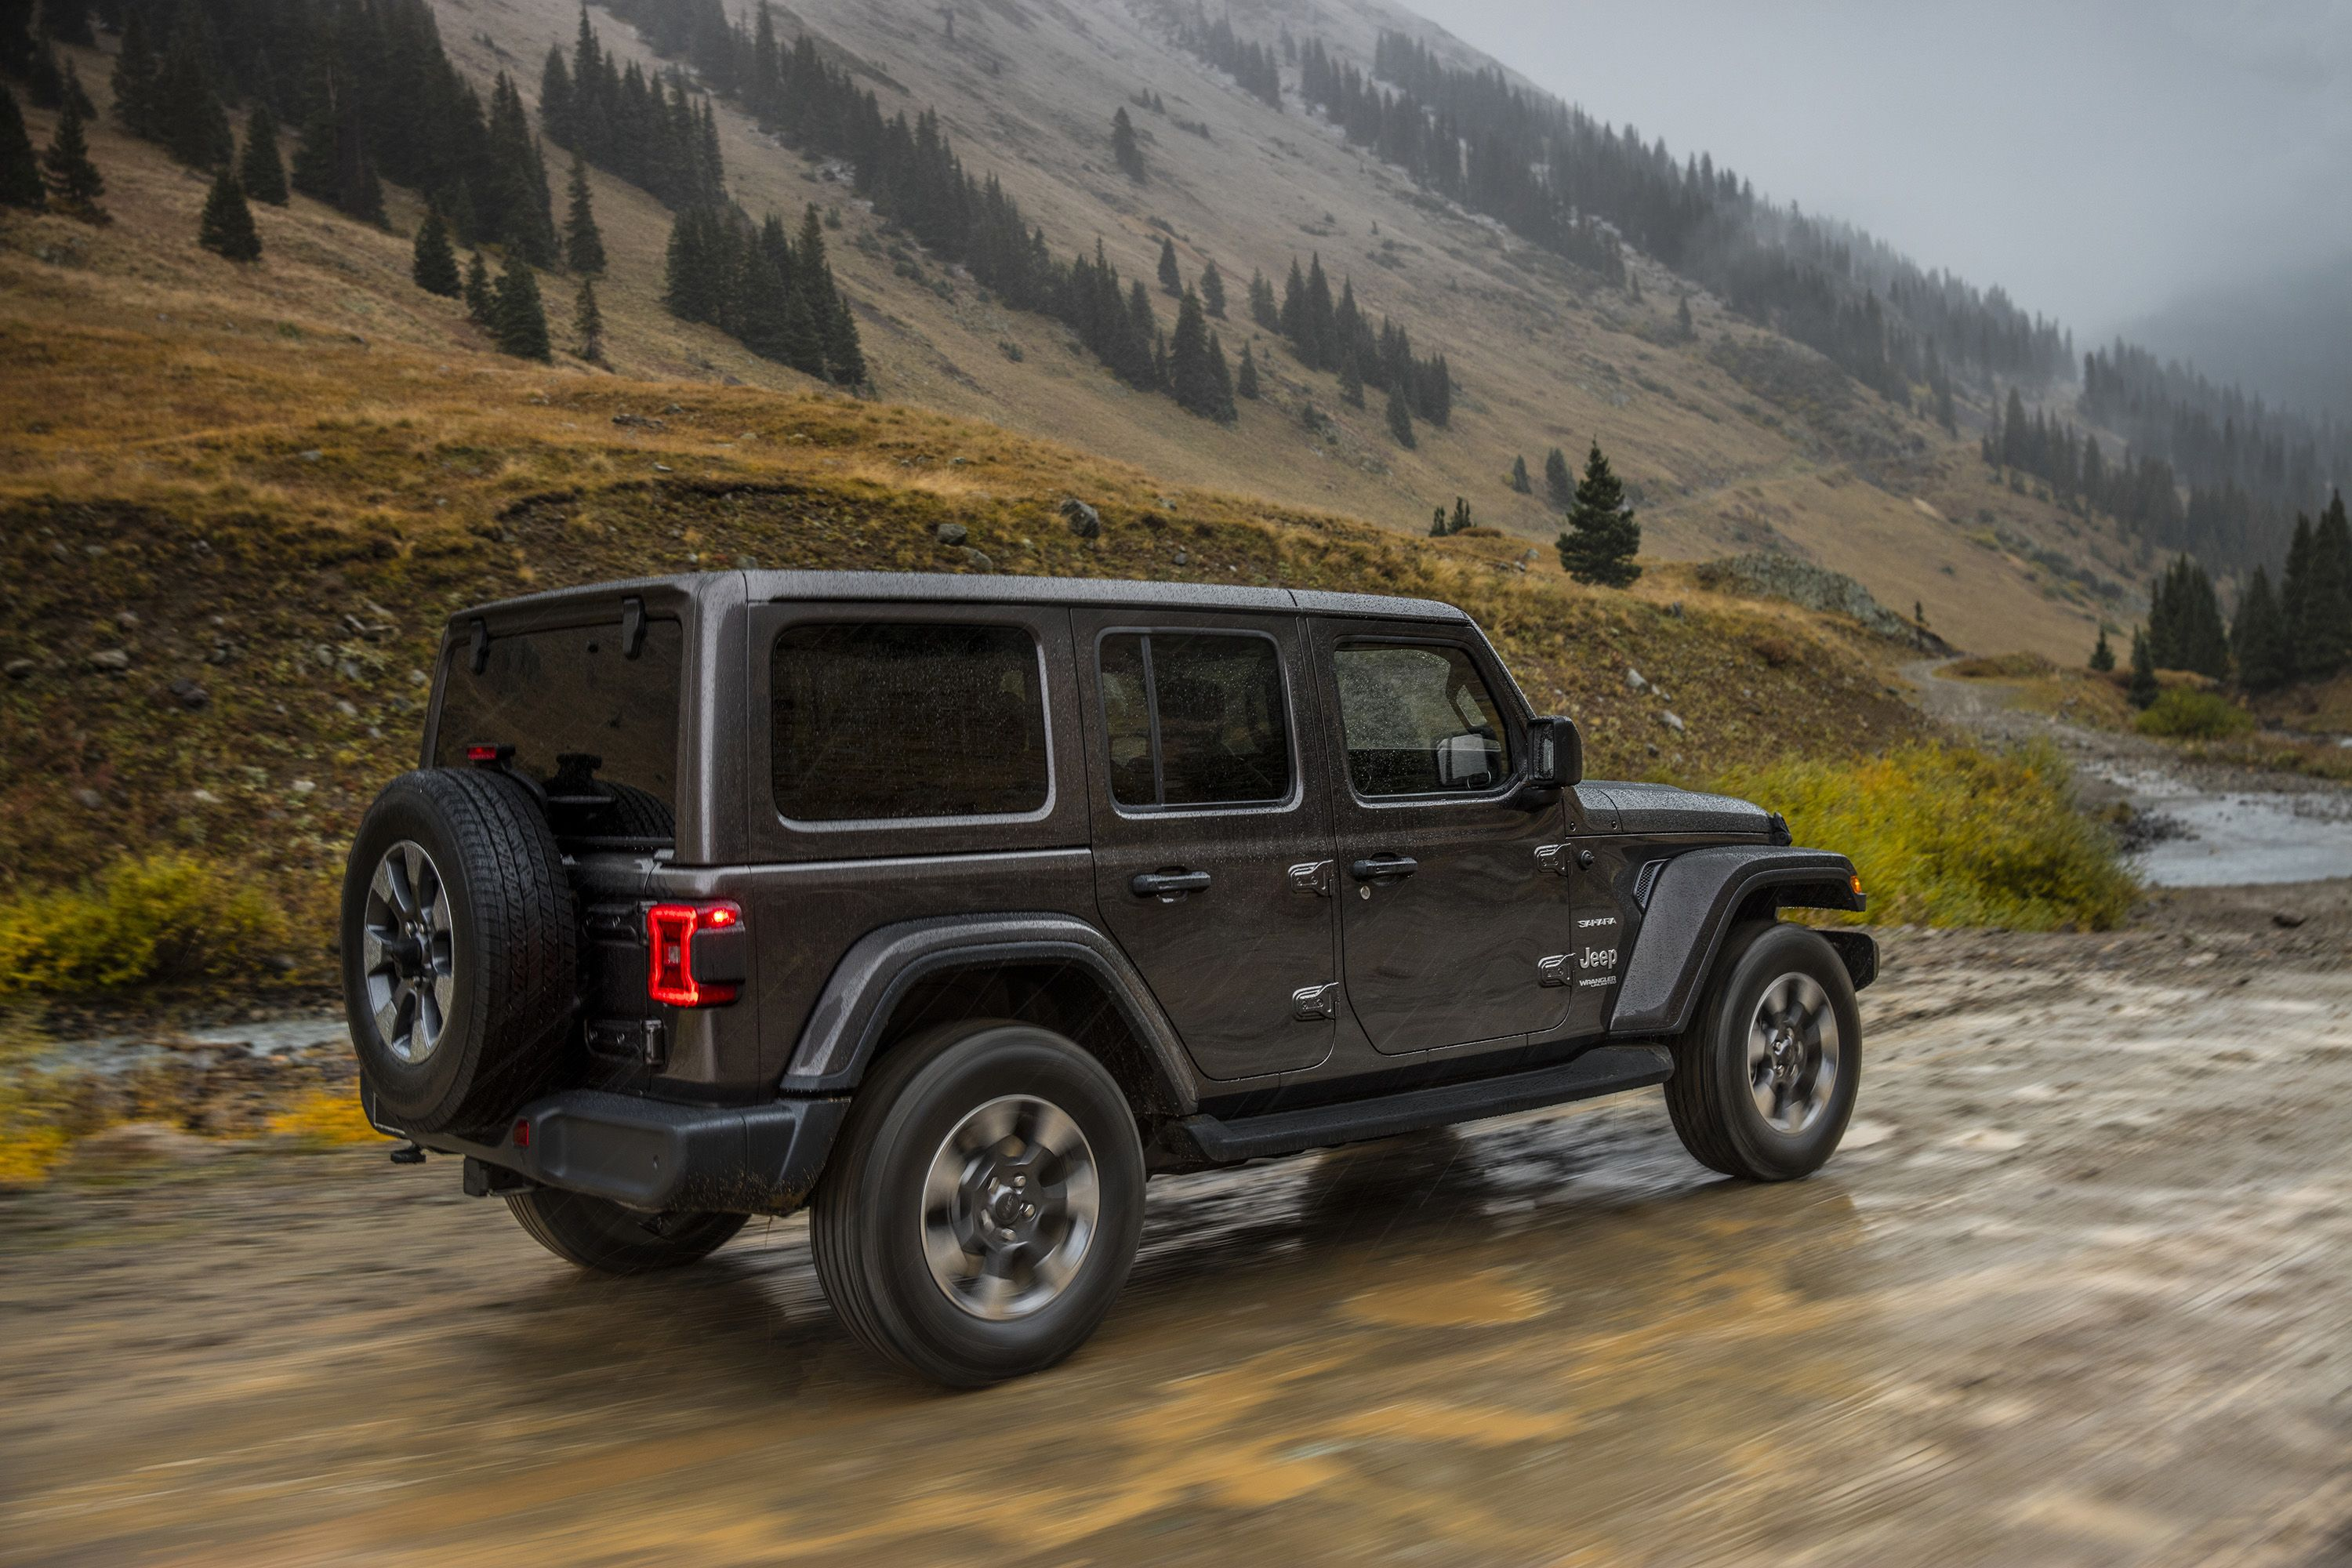 2020 Jeep Wrangler News Diesel Phev Price >> 2020 Jeep Wrangler Unlimited Will Get A Diesel V 6